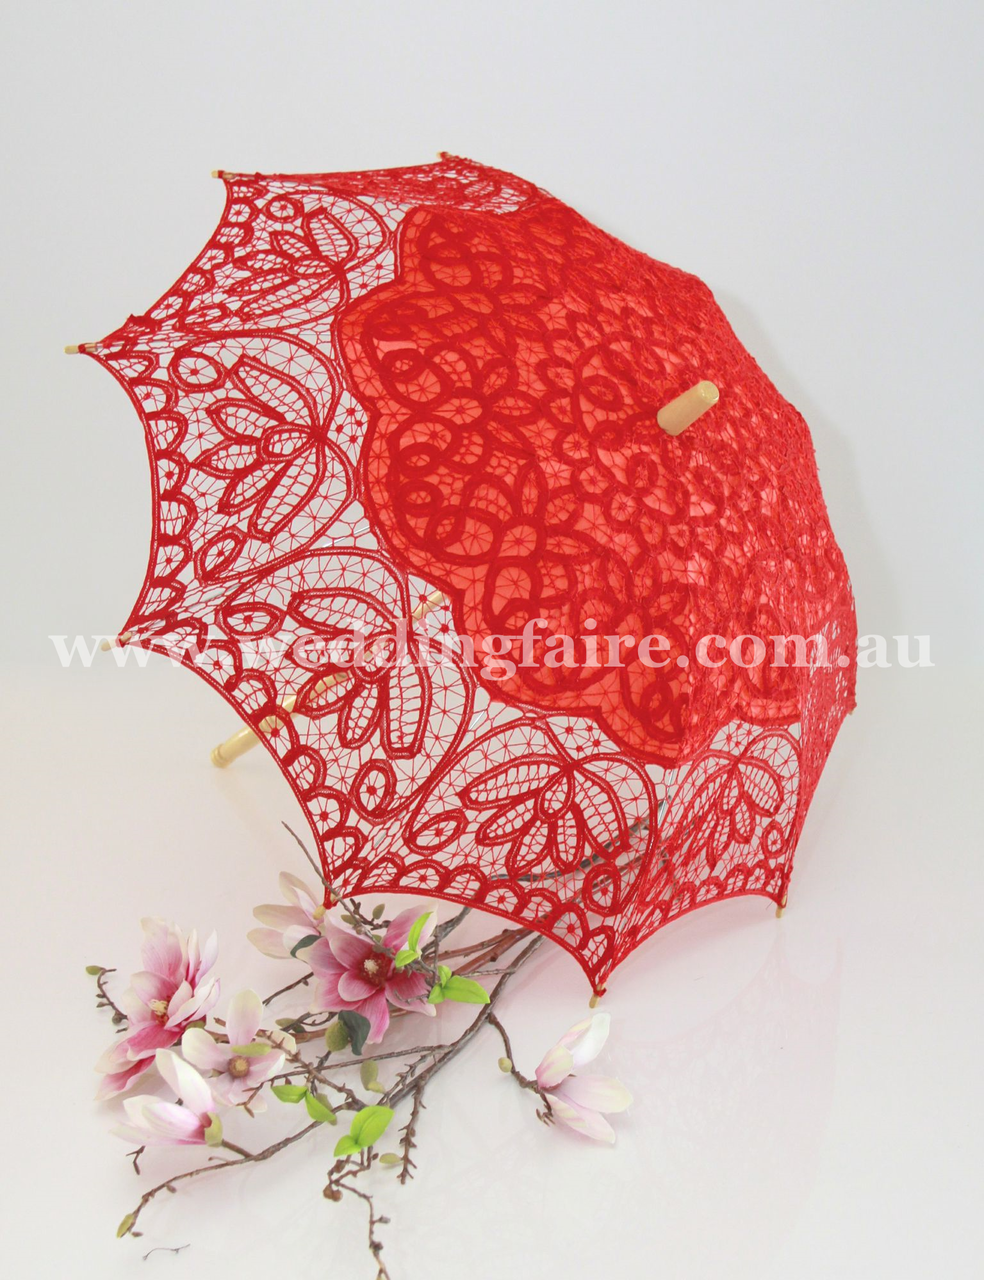 Classic Lace | 80cm D Parasol - Red | Lace parasol, Weddings and Wedding